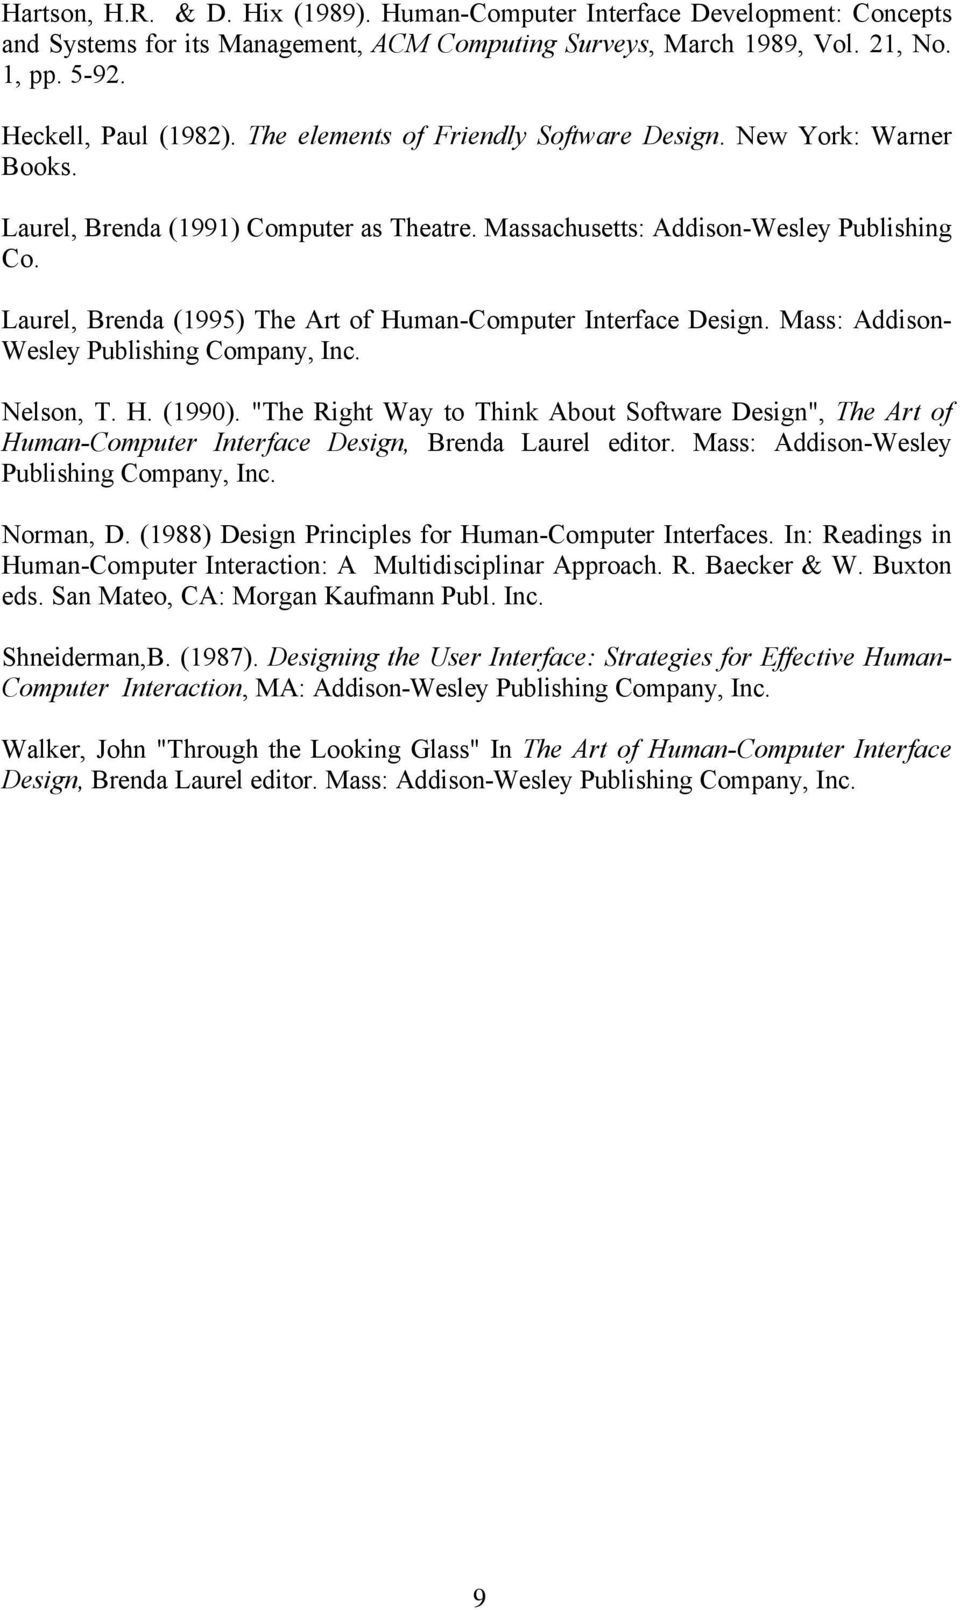 Laurel, Brenda (1995) The Art of Human-Computer Interface Design. Mass: Addison- Wesley Publishing Company, Inc. Nelson, T. H. (1990).